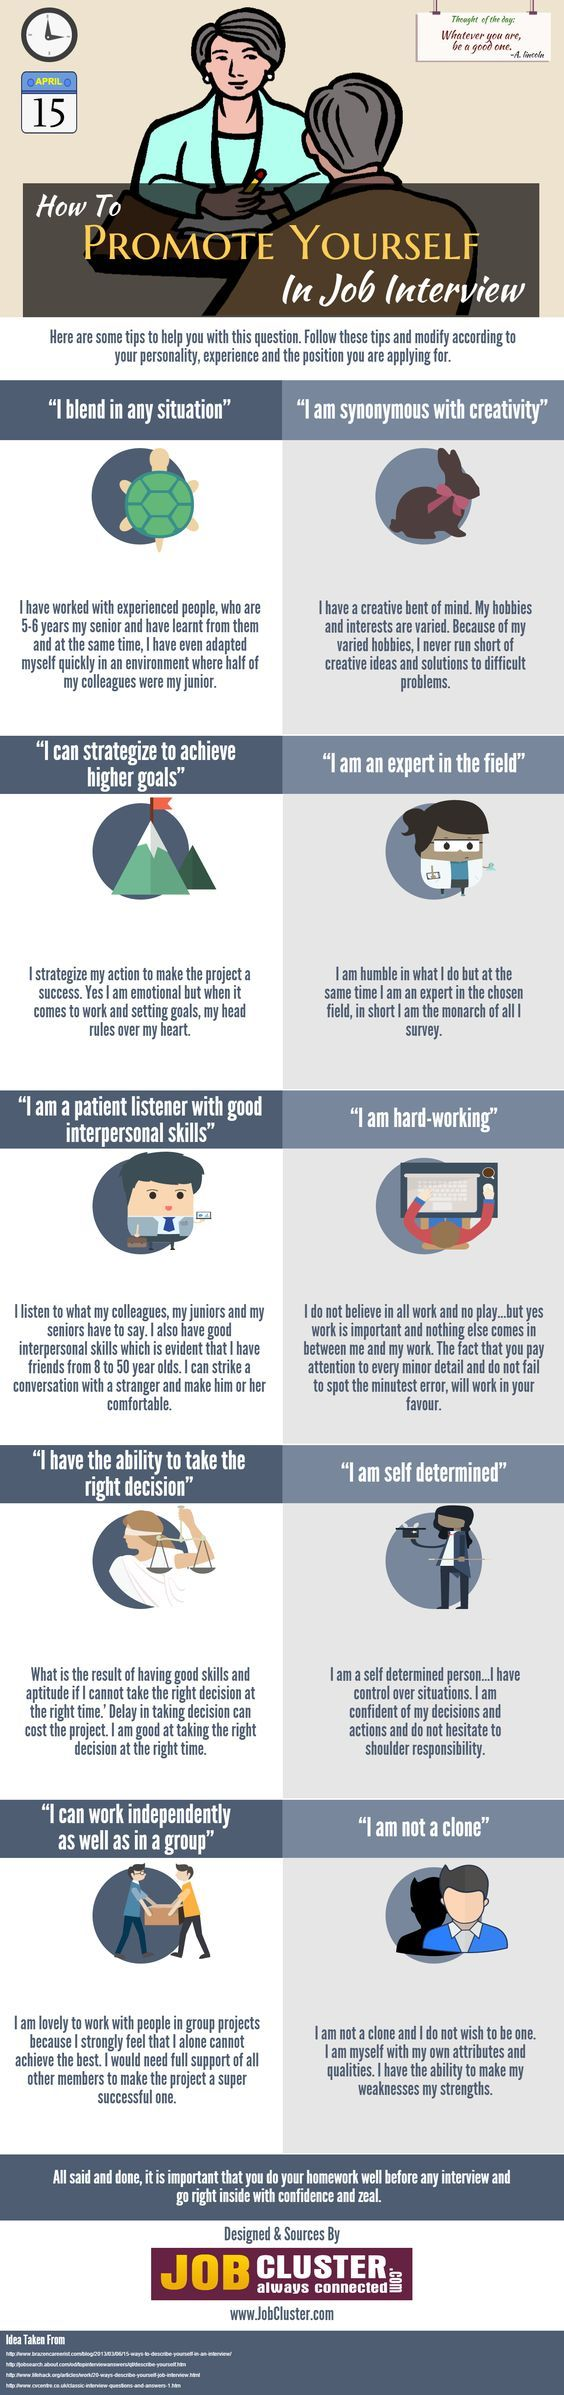 The Words To Use When Promoting Yourself At A Job Interview